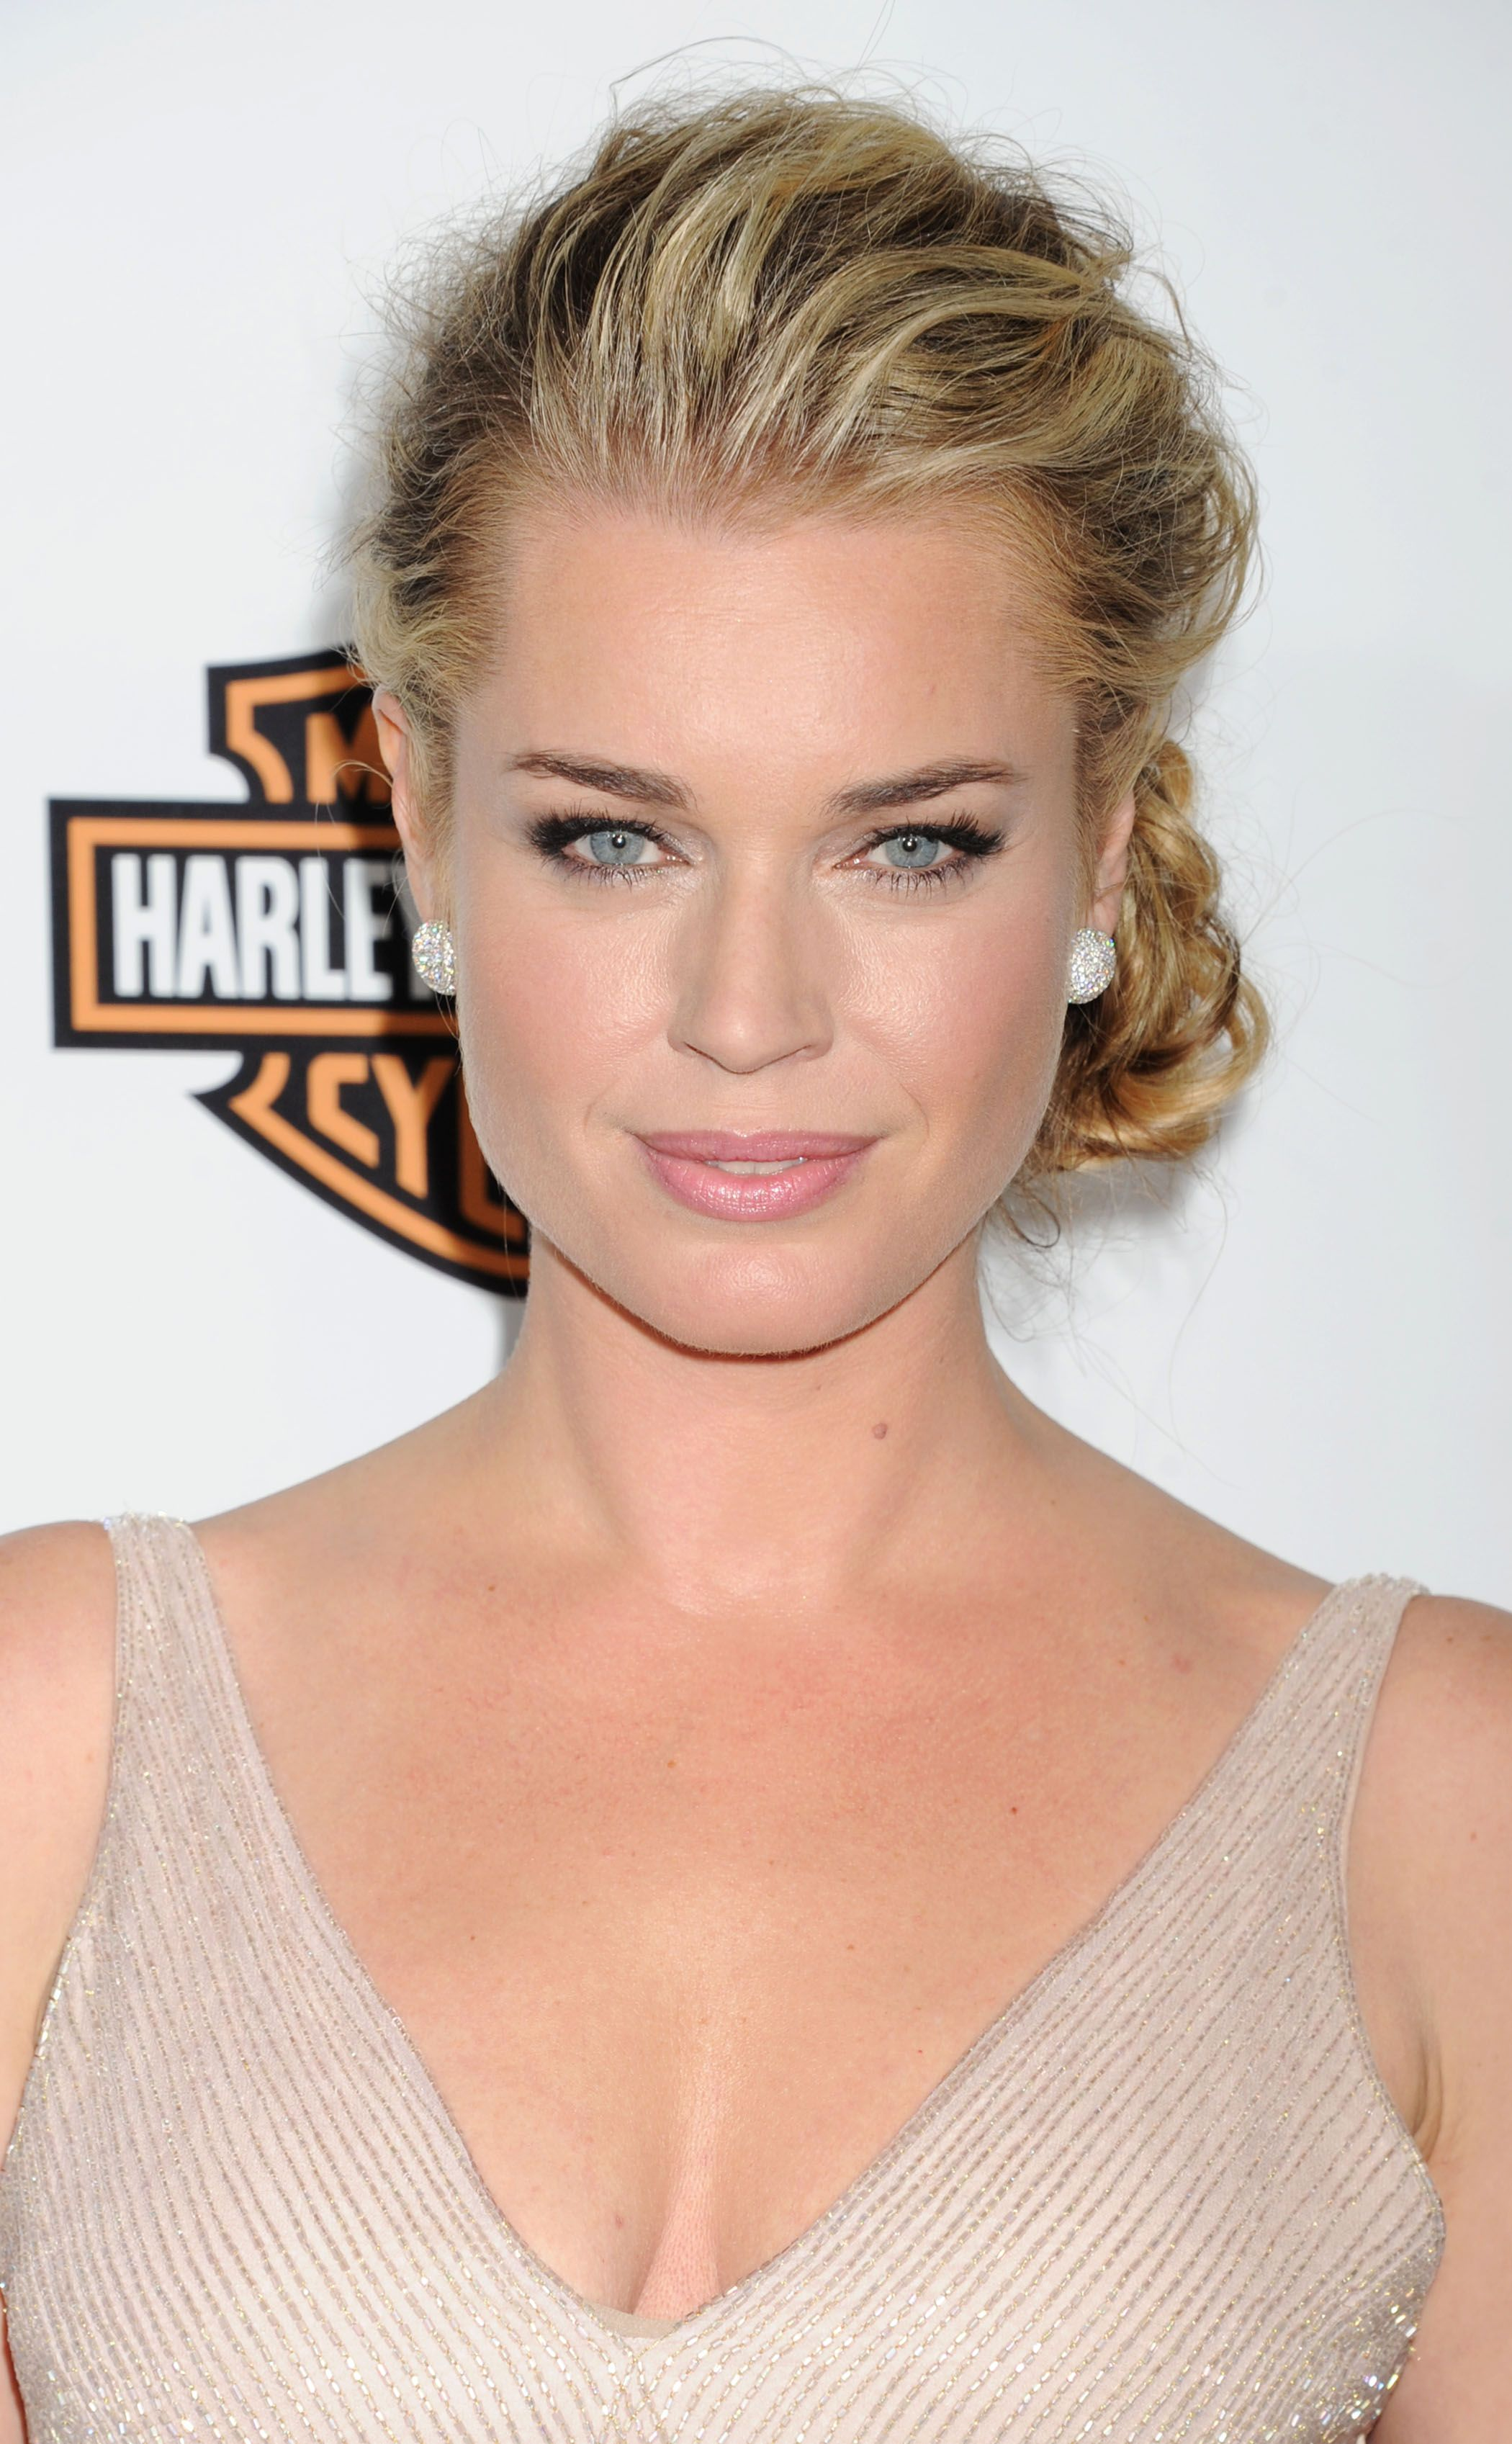 rebecca romijn footrebecca romijn height, rebecca romijn фото, rebecca romijn bellazon, rebecca romijn interview, rebecca romijn tall, rebecca romijn foot, rebecca romijn daughters, rebecca romijn site, rebecca romijn x-men first class, rebecca romijn sports illustrated, rebecca romijn wikipedia, rebecca romijn wdw, rebecca romijn fansite, rebecca romijn workout, rebecca romijn instagram, rebecca romijn 2016, rebecca romijn victoria's secret, rebecca romijn first class, rebecca romijn vs jennifer lawrence, rebecca romijn and jerry o'connell